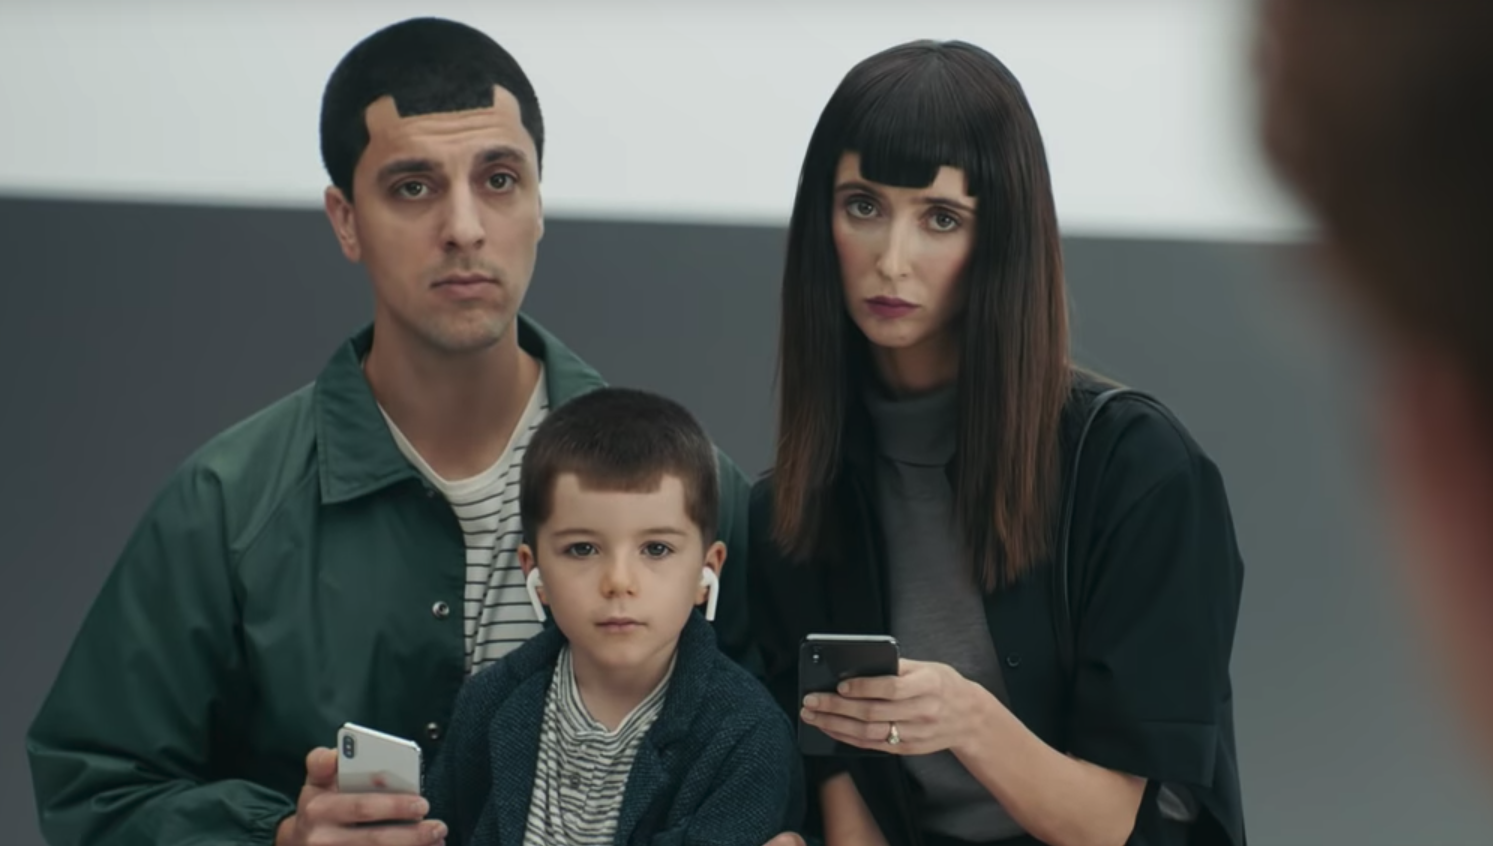 Photo of Samsung releases ads designed to mock the latest iPhone X features